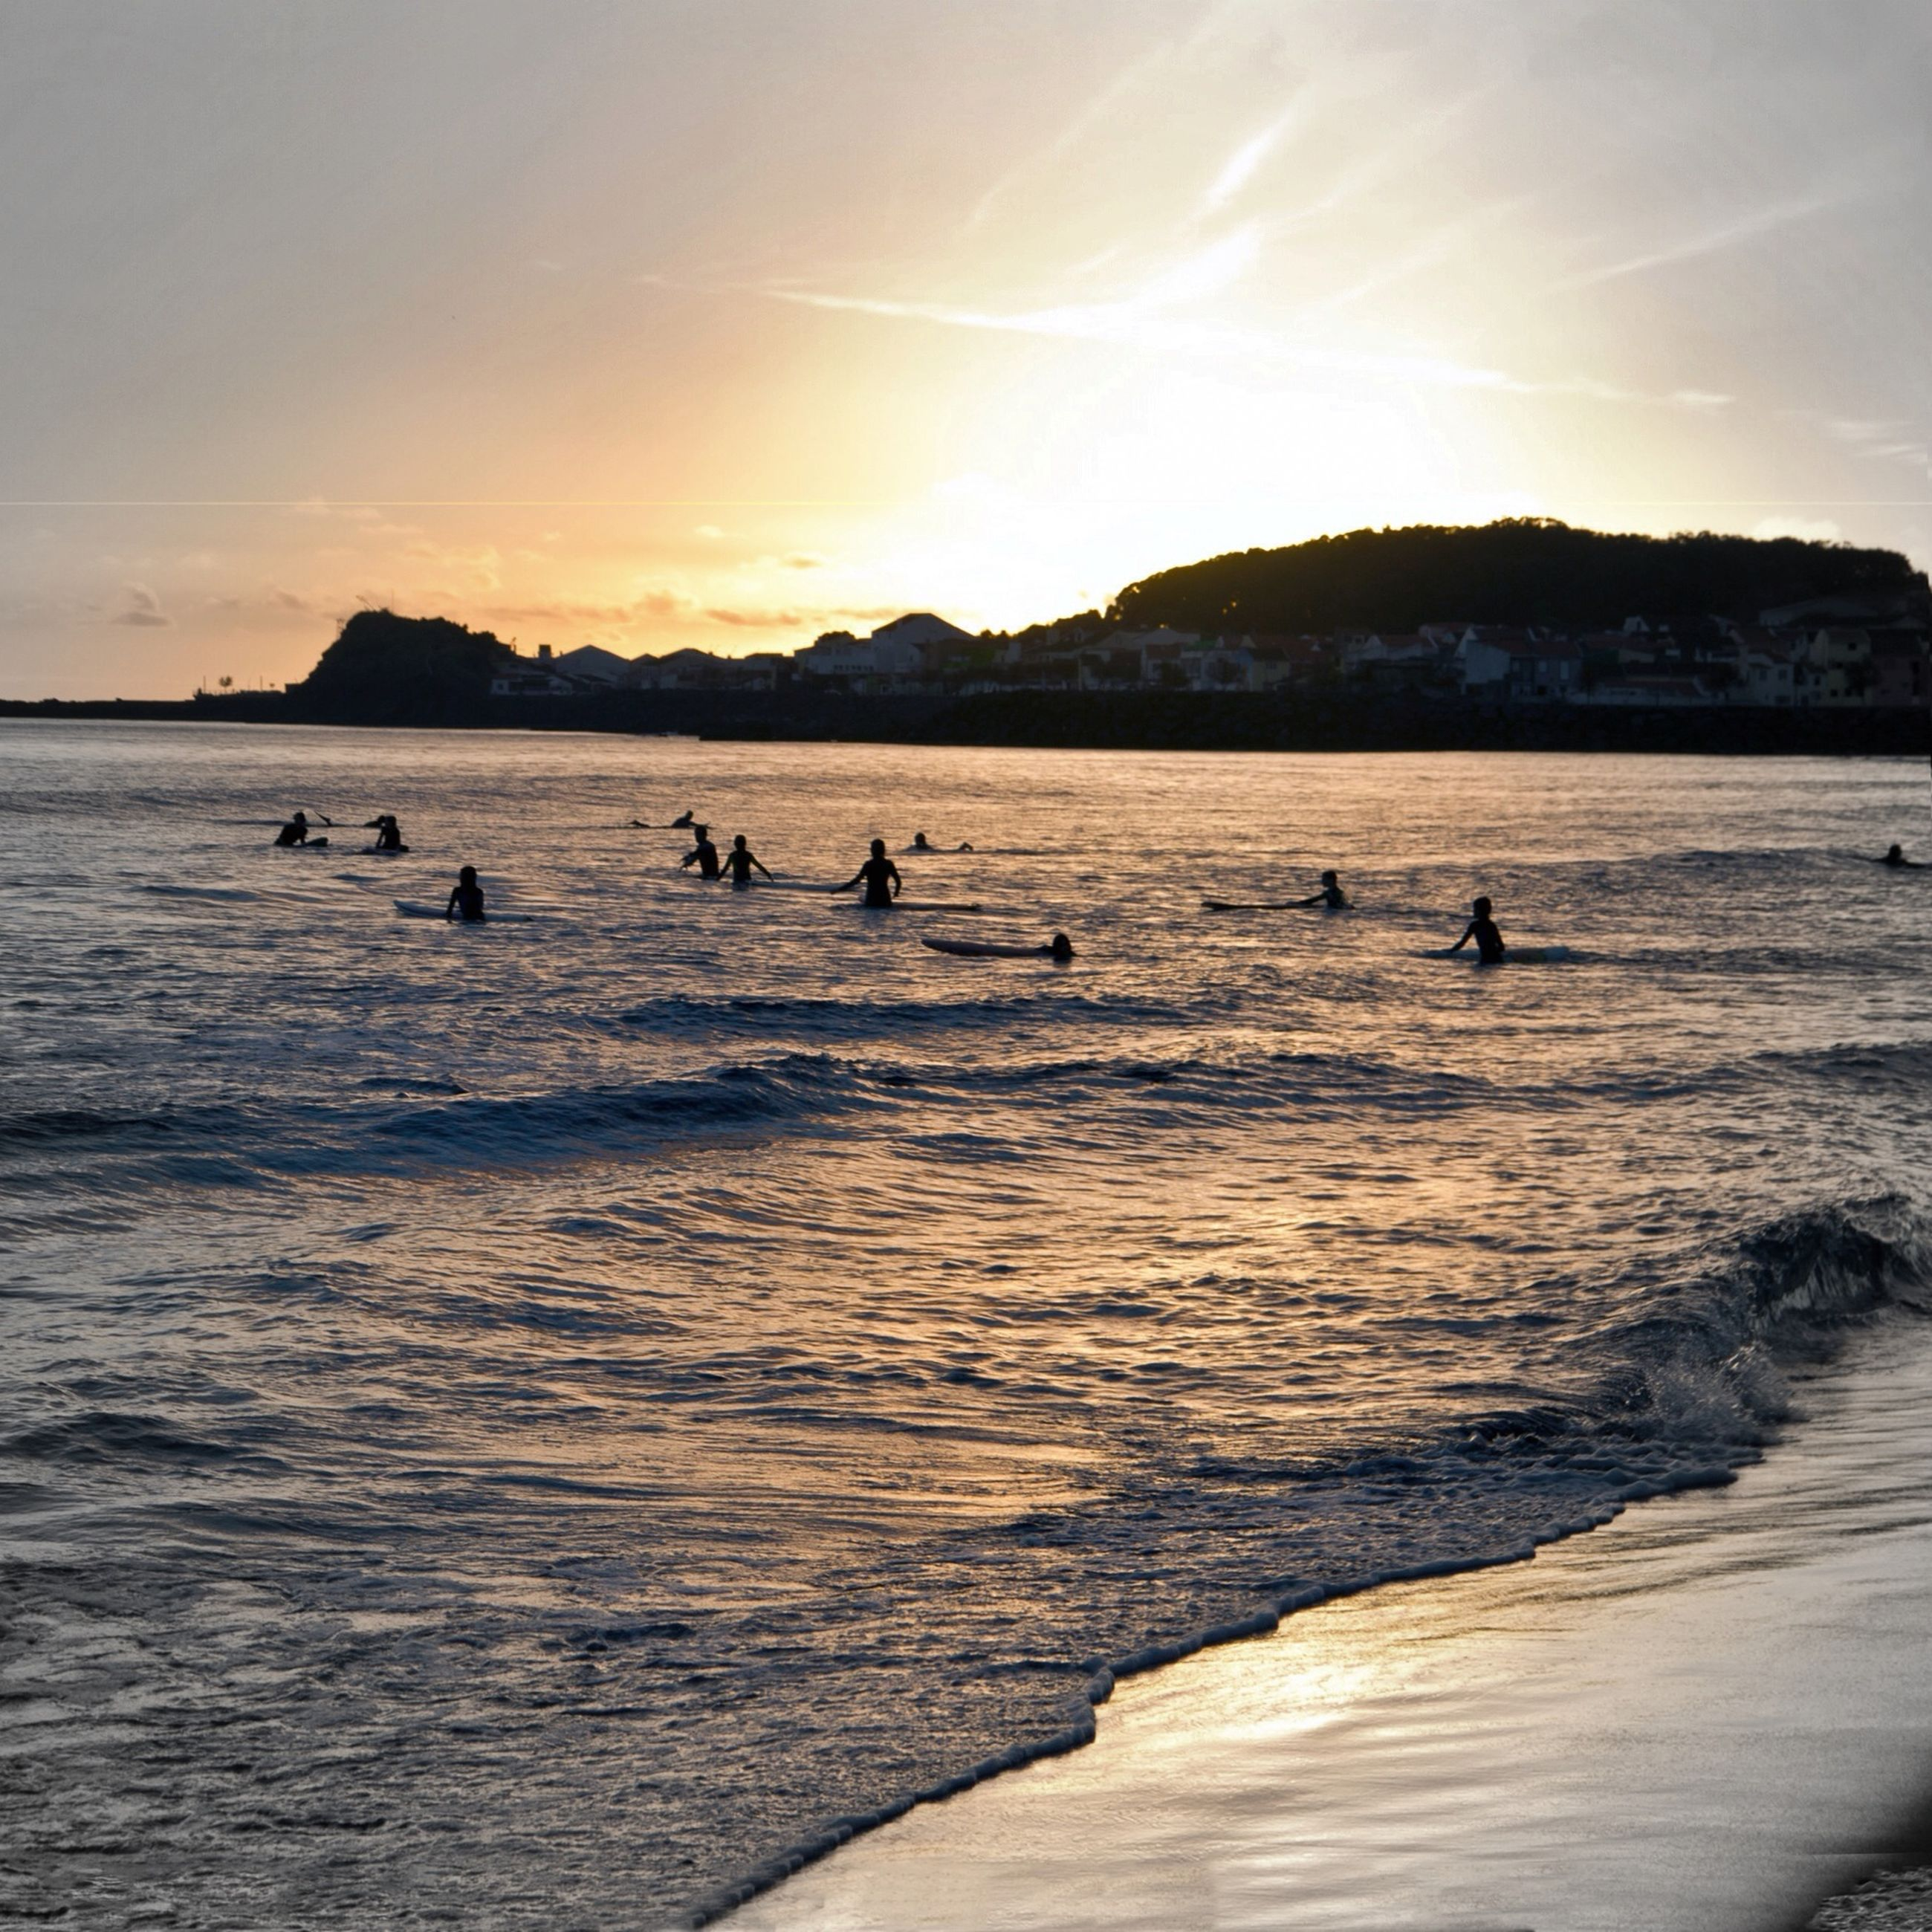 water, sea, beach, scenics, sky, beauty in nature, mountain, tranquil scene, sunset, tranquility, shore, nature, sand, animal themes, incidental people, sunlight, idyllic, sun, vacations